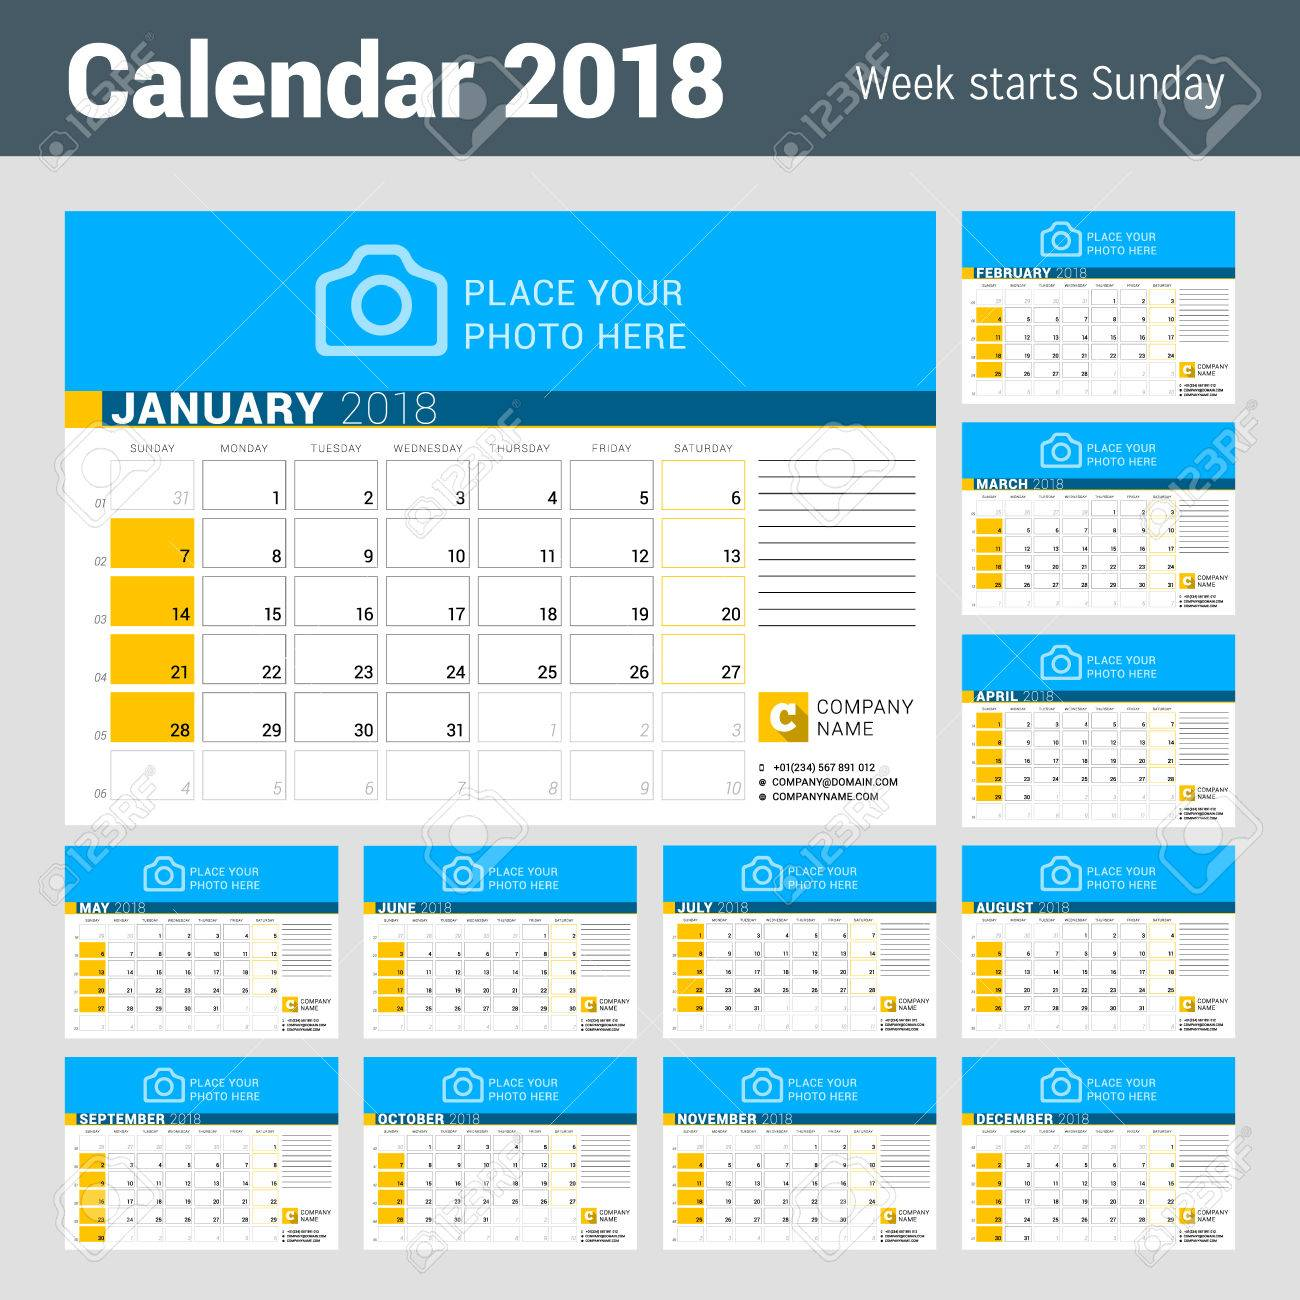 calendar for 2018 year vector design template with place for